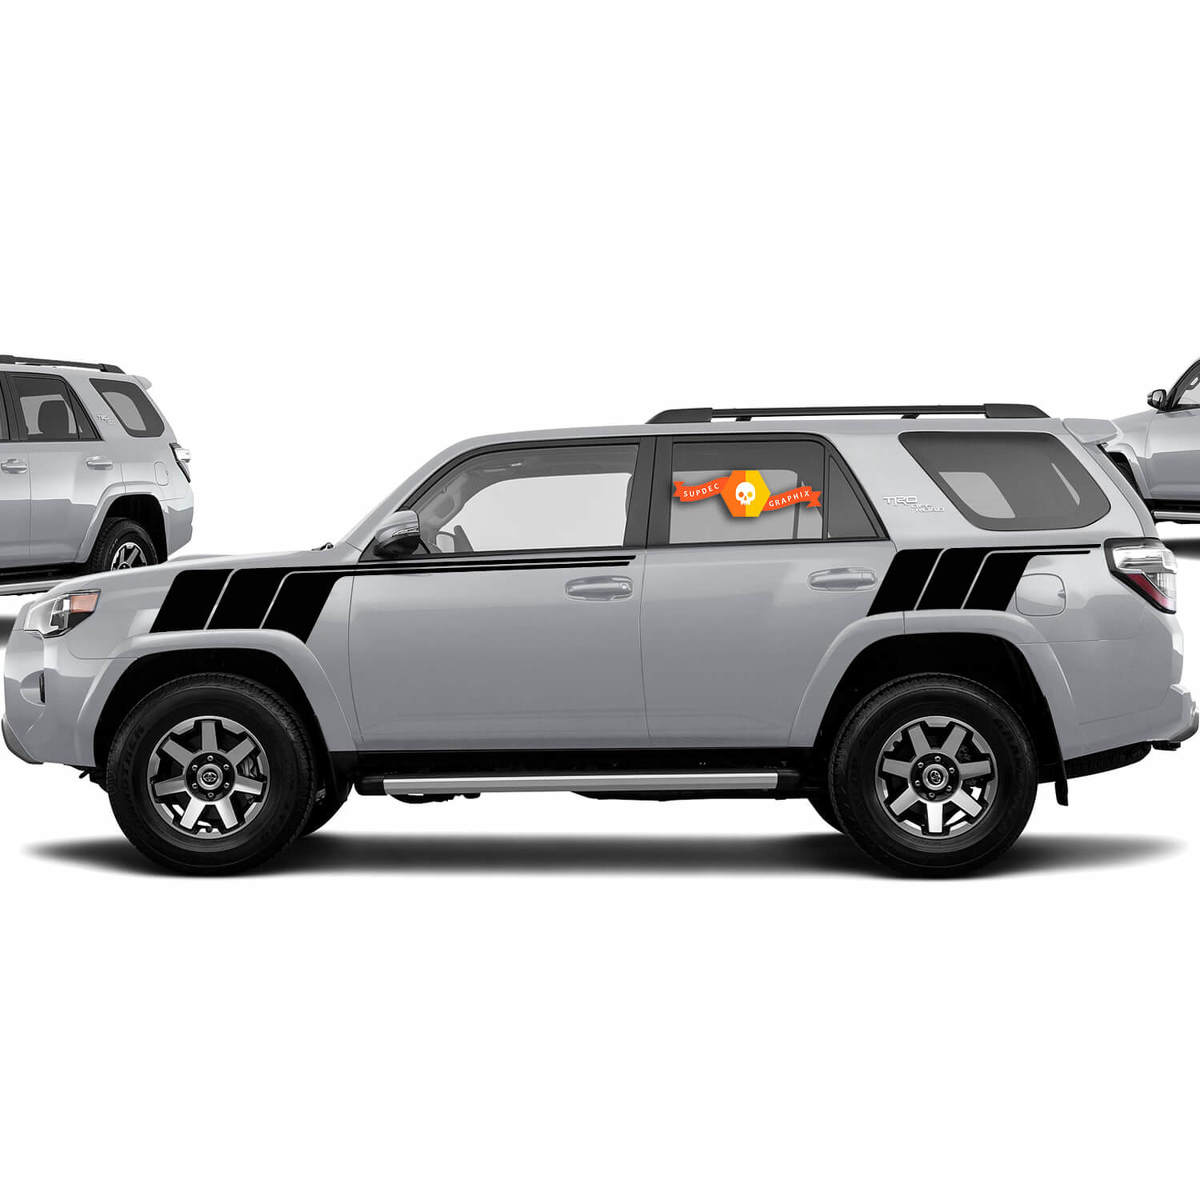 Kits Of Toyota 4runner Trd Back To The Future All Black Retro Vintage Stripe Kit Sport